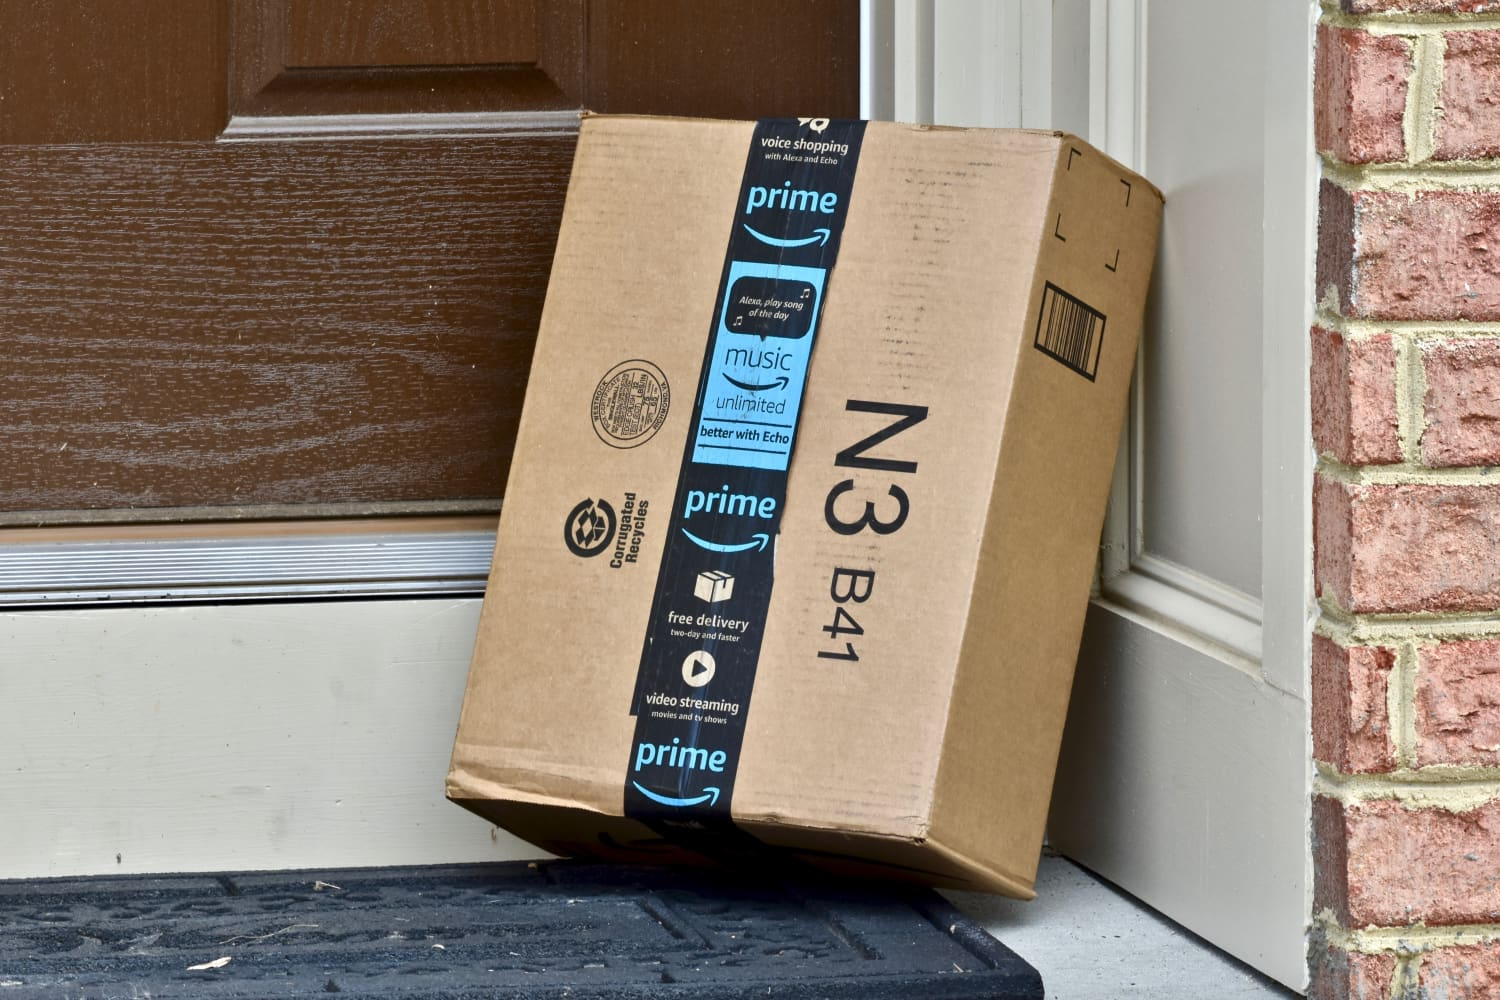 Amazon Wants to Give You $5,000—All You Have to Do Is Buy a House